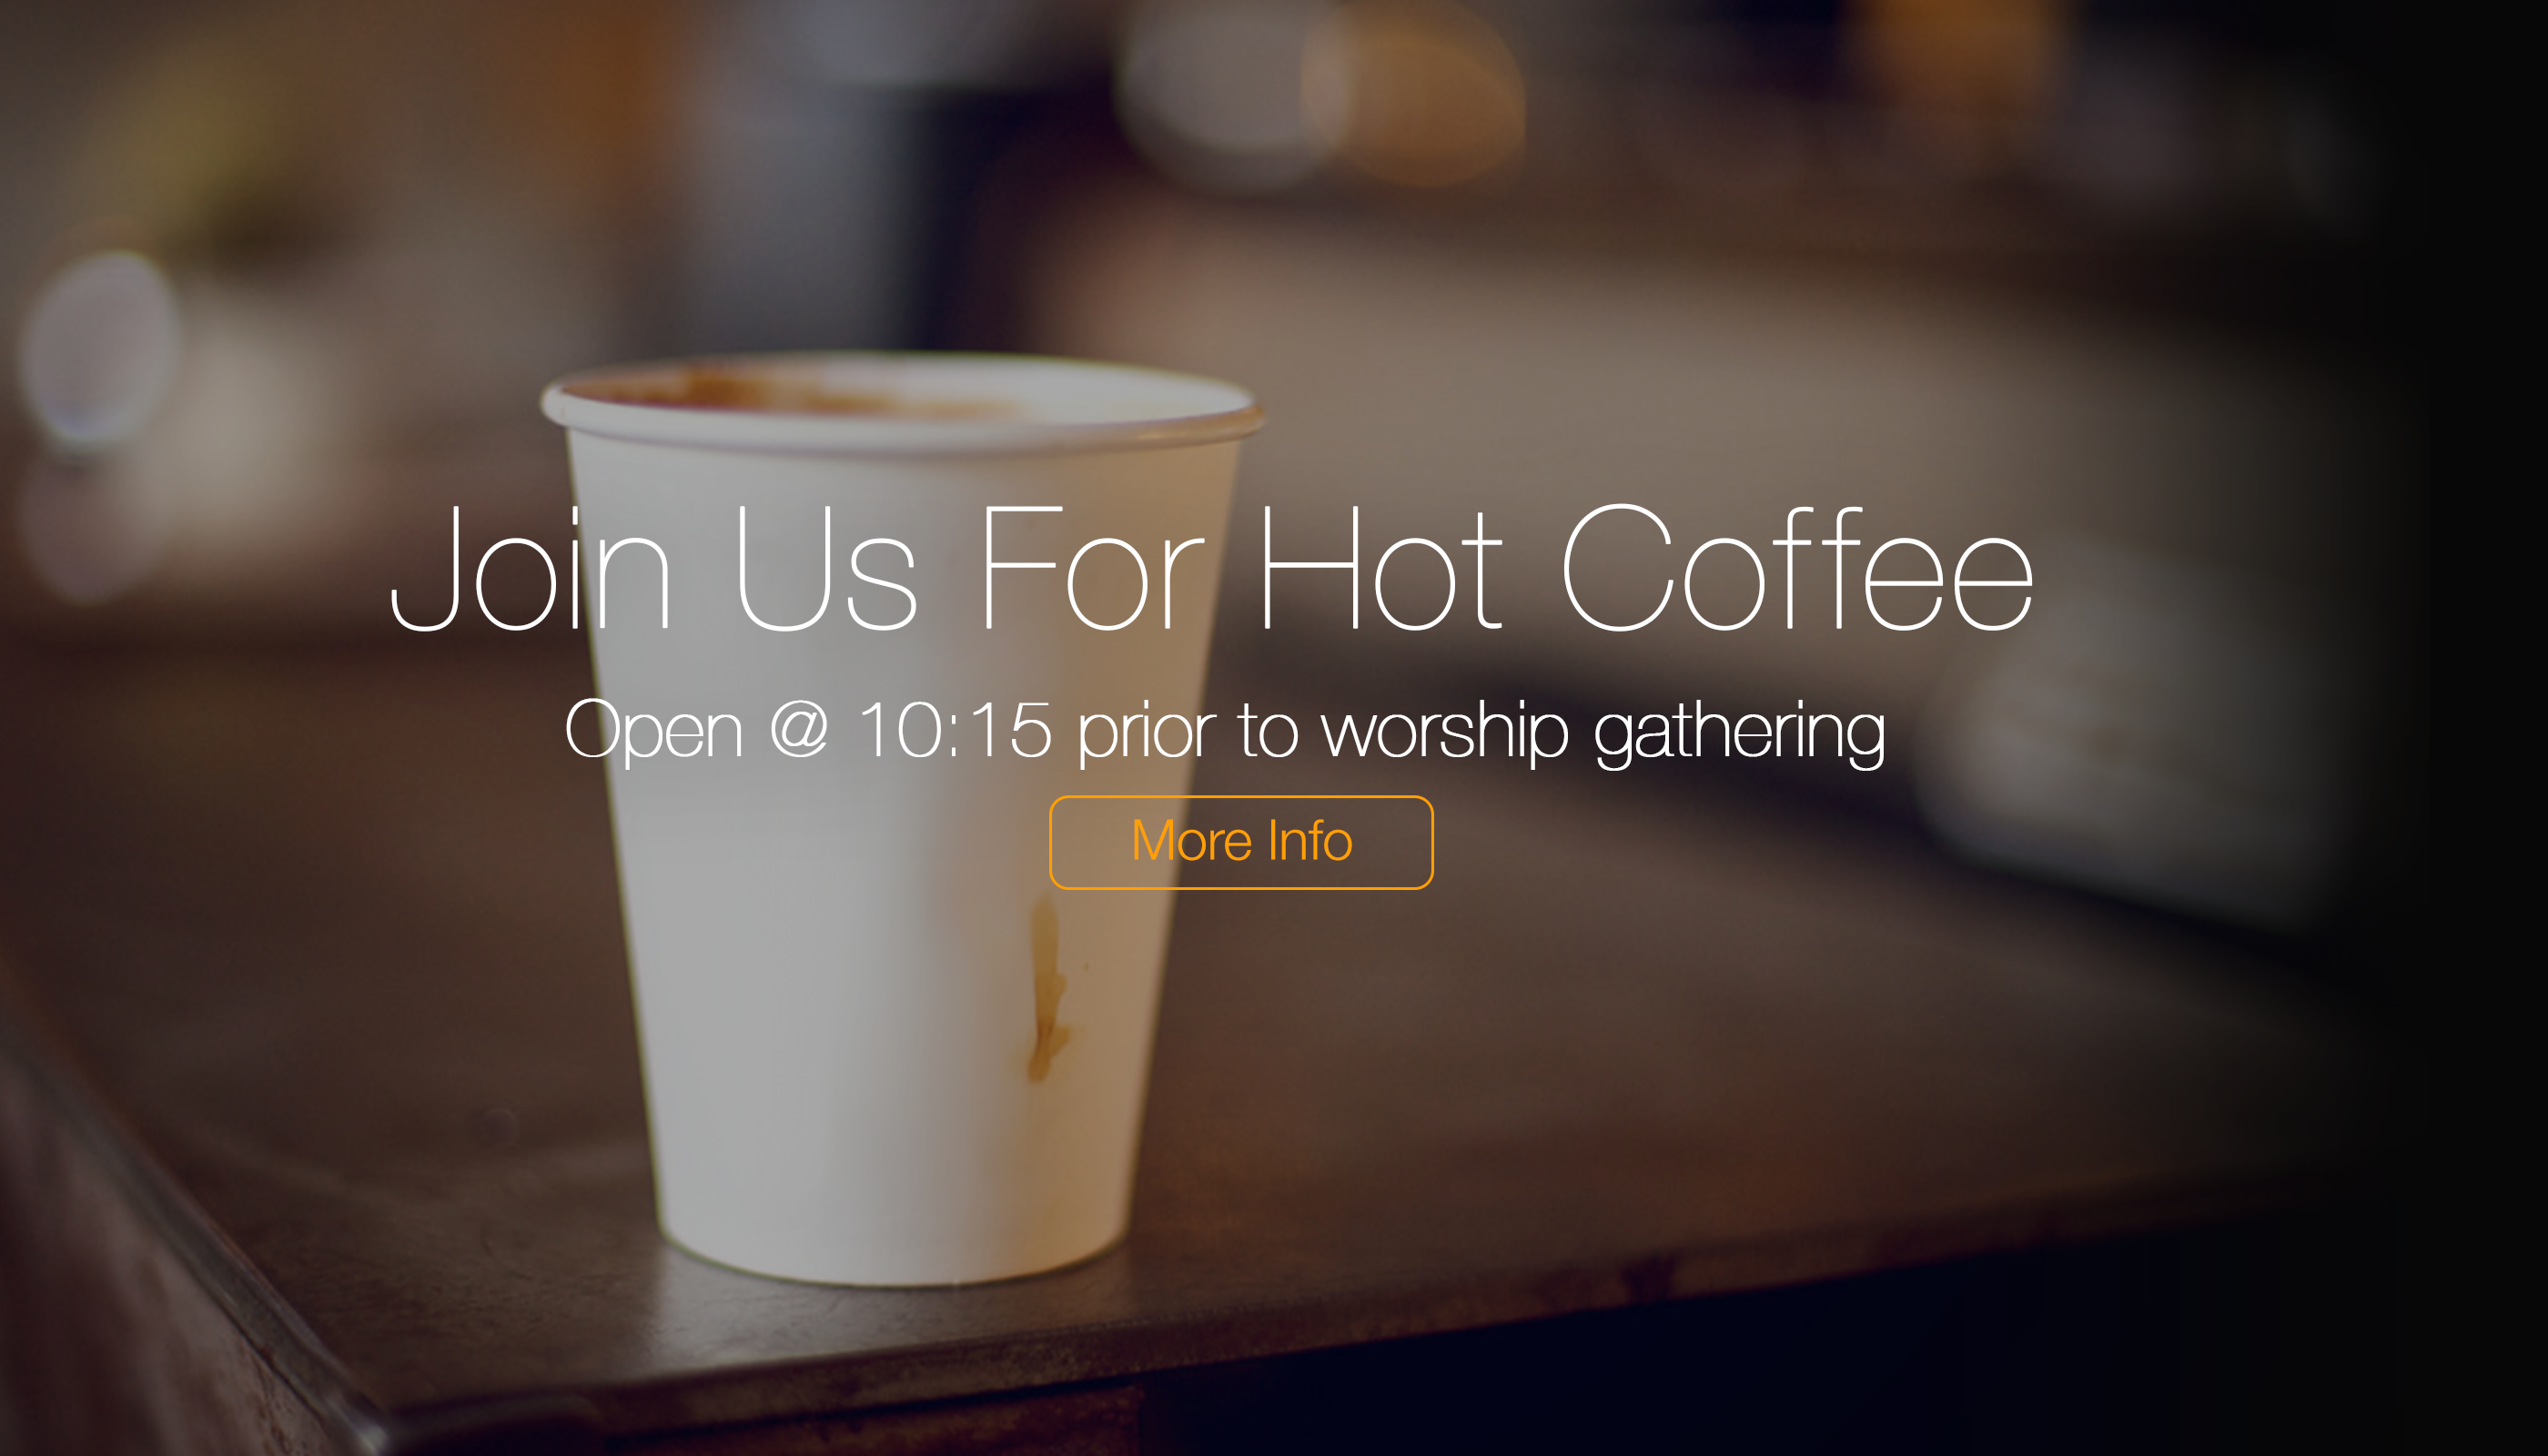 The Life Church Lisle - Join us early for coffee